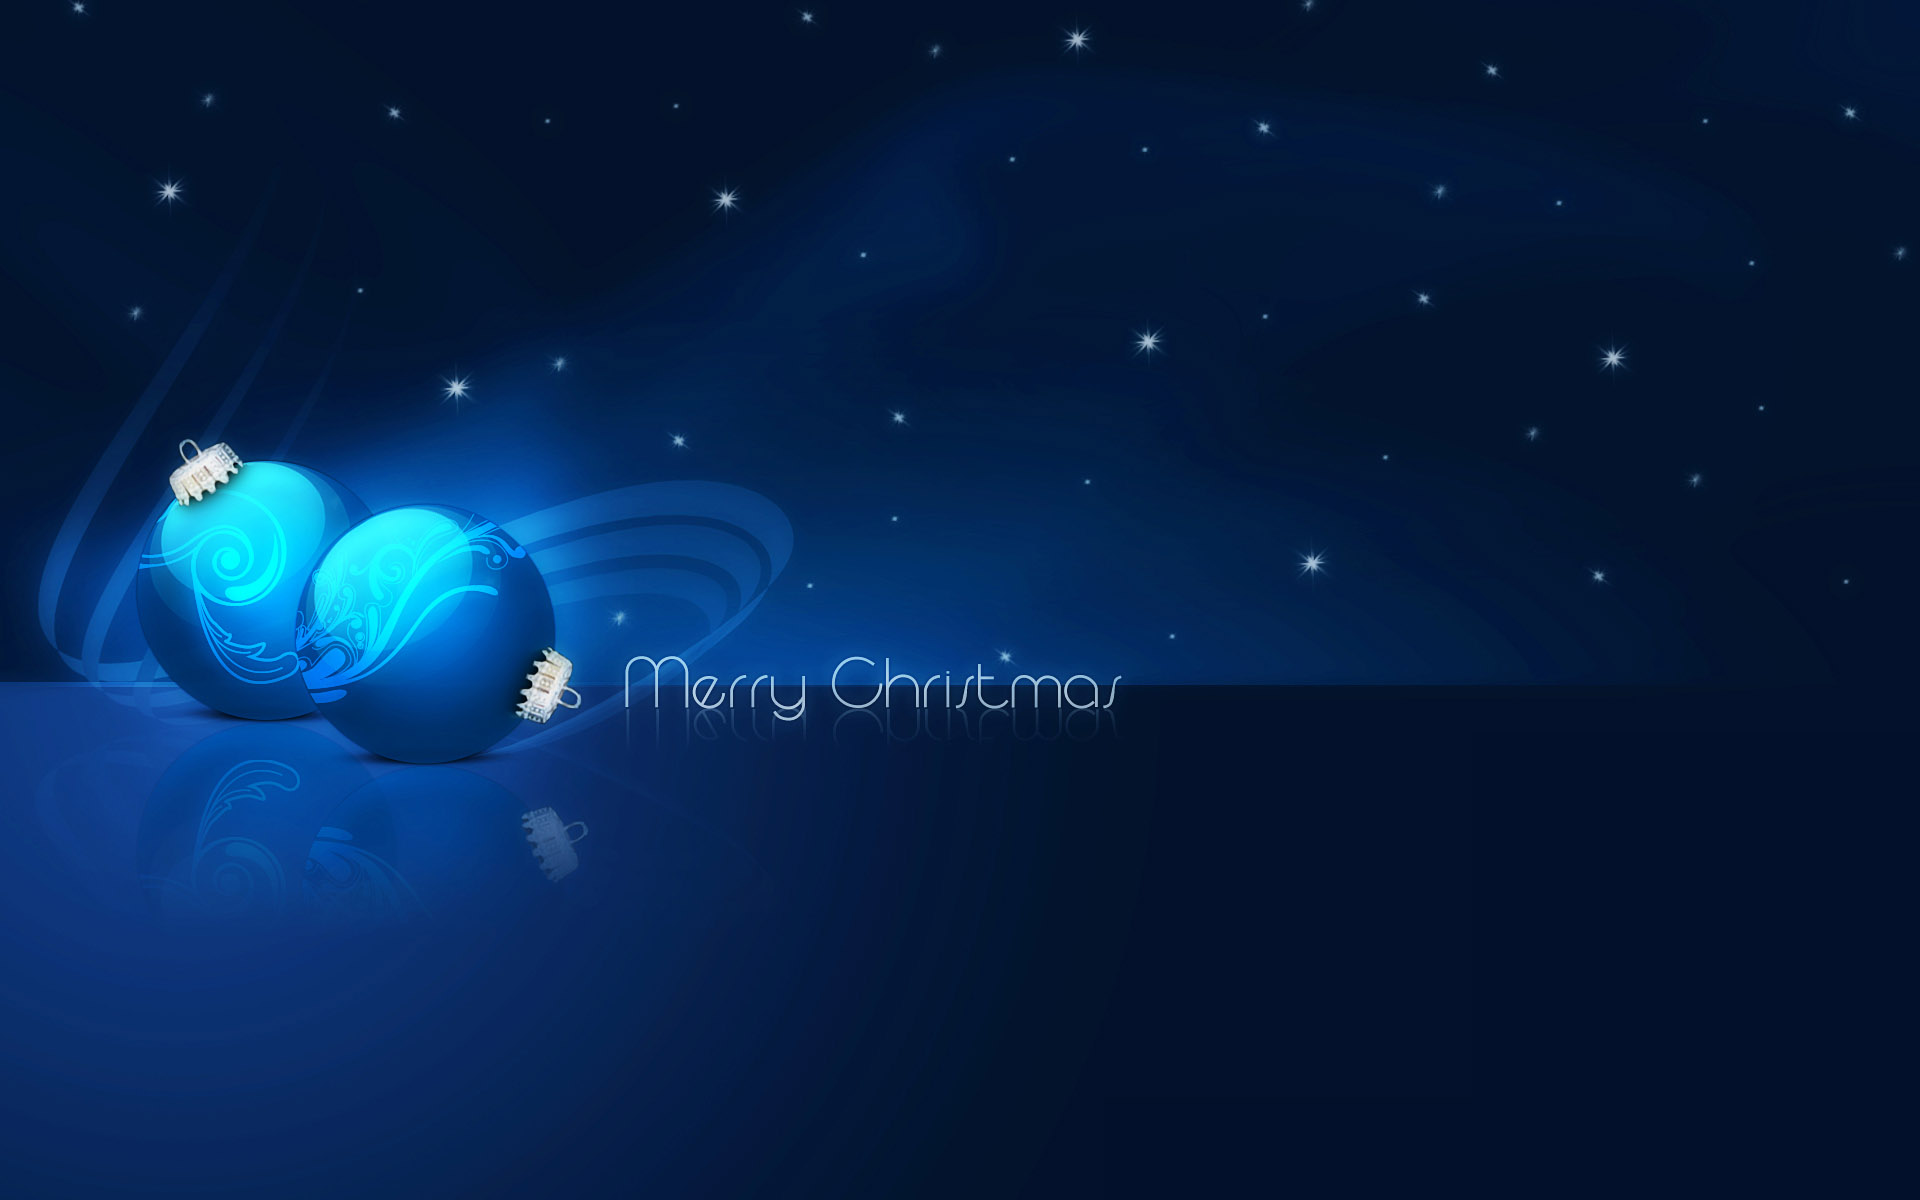 Christmas wallpaper high definition 27094